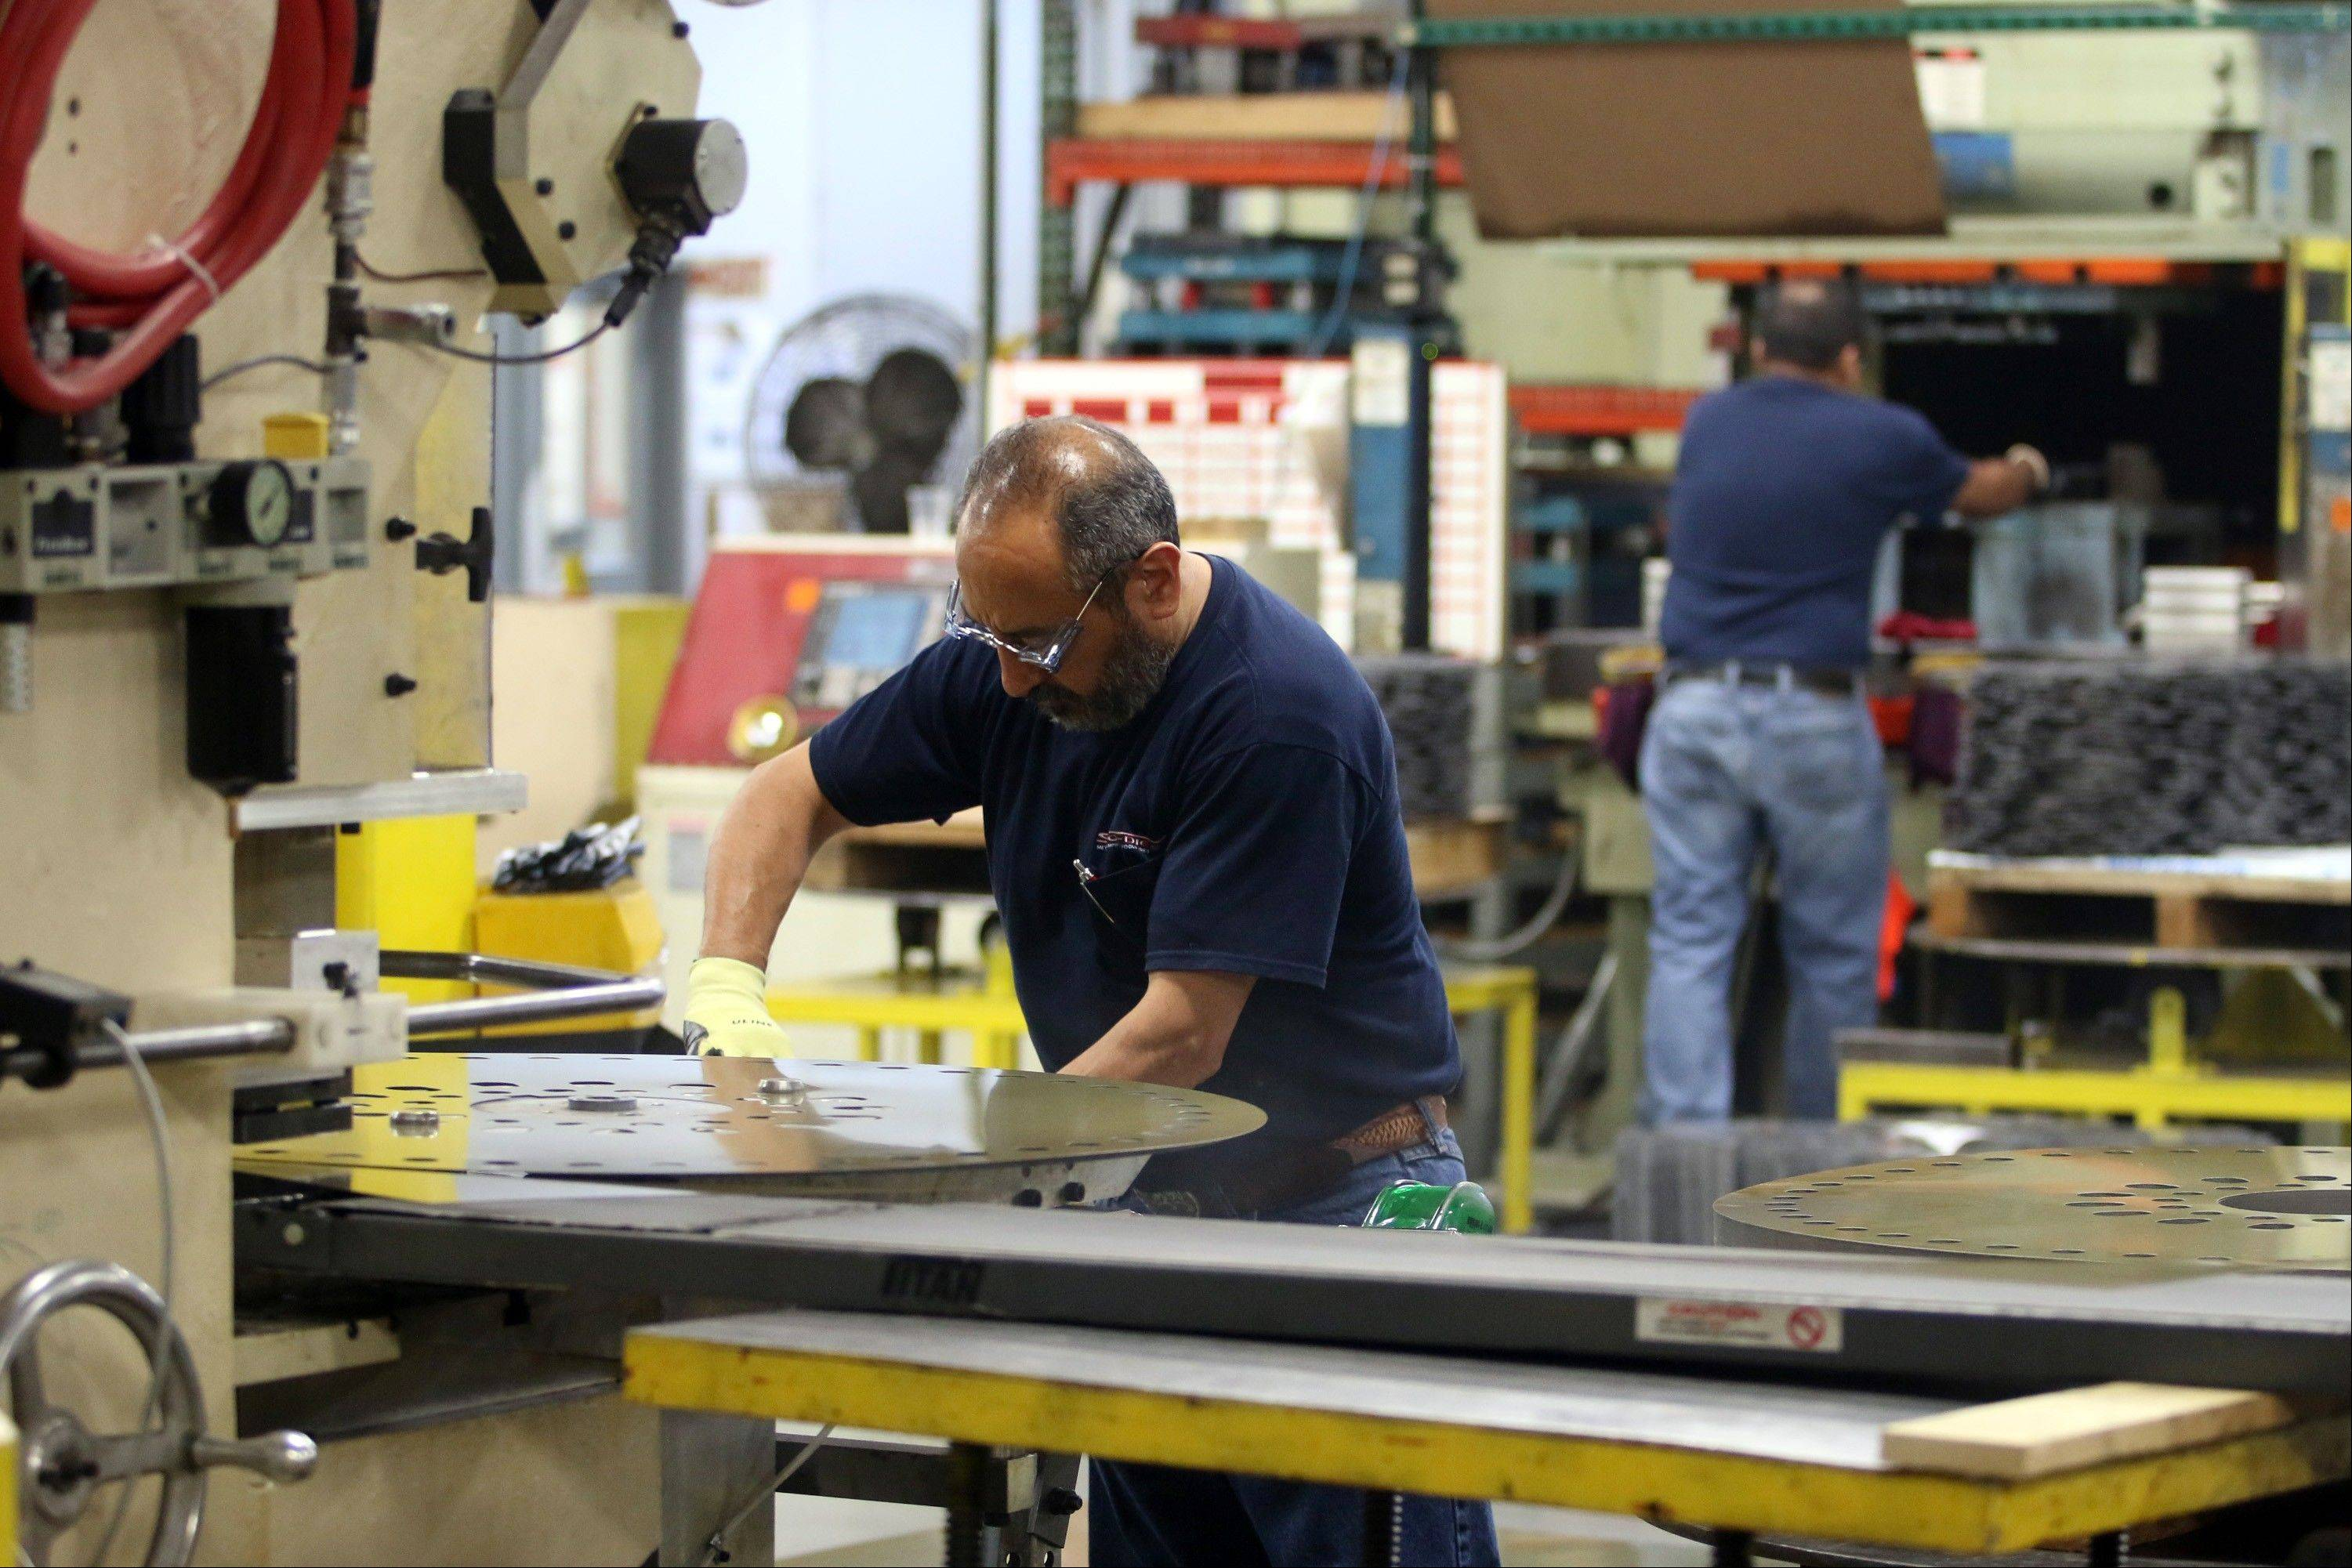 Punch press operators work at the Sko-Die Inc. custom metal manufacturing facility in Morton Grove. U.S. factory activity expanded last month at the fastest pace in 2 � years, an encouraging sign that manufacturing could lift economic growth and hiring in the coming months.